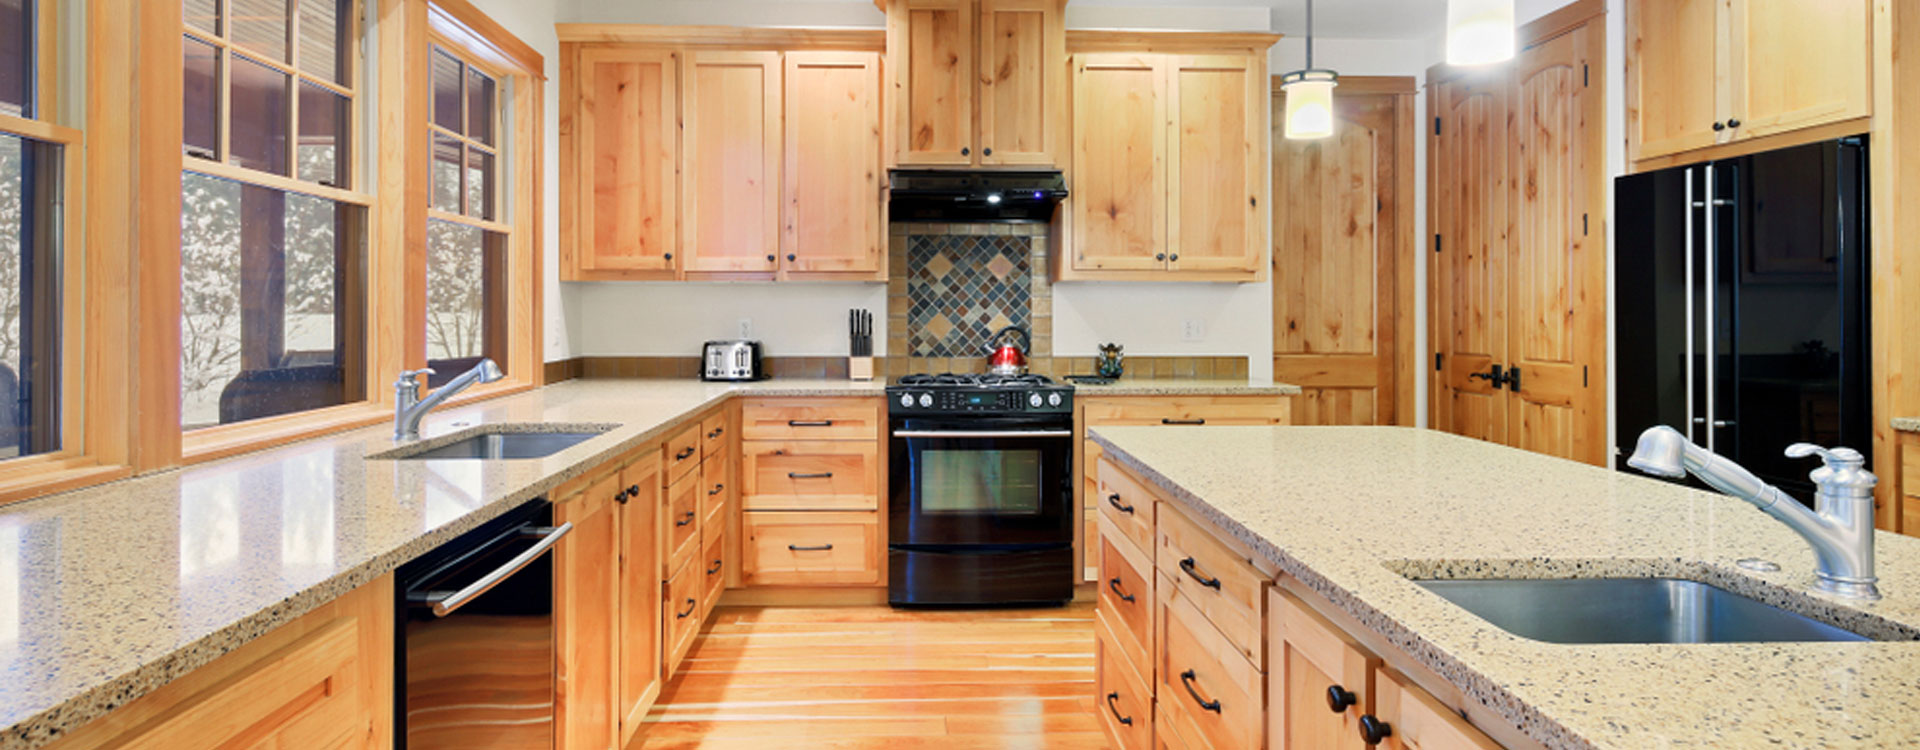 American Kitchen Refacing – New Kitchens for Less ...